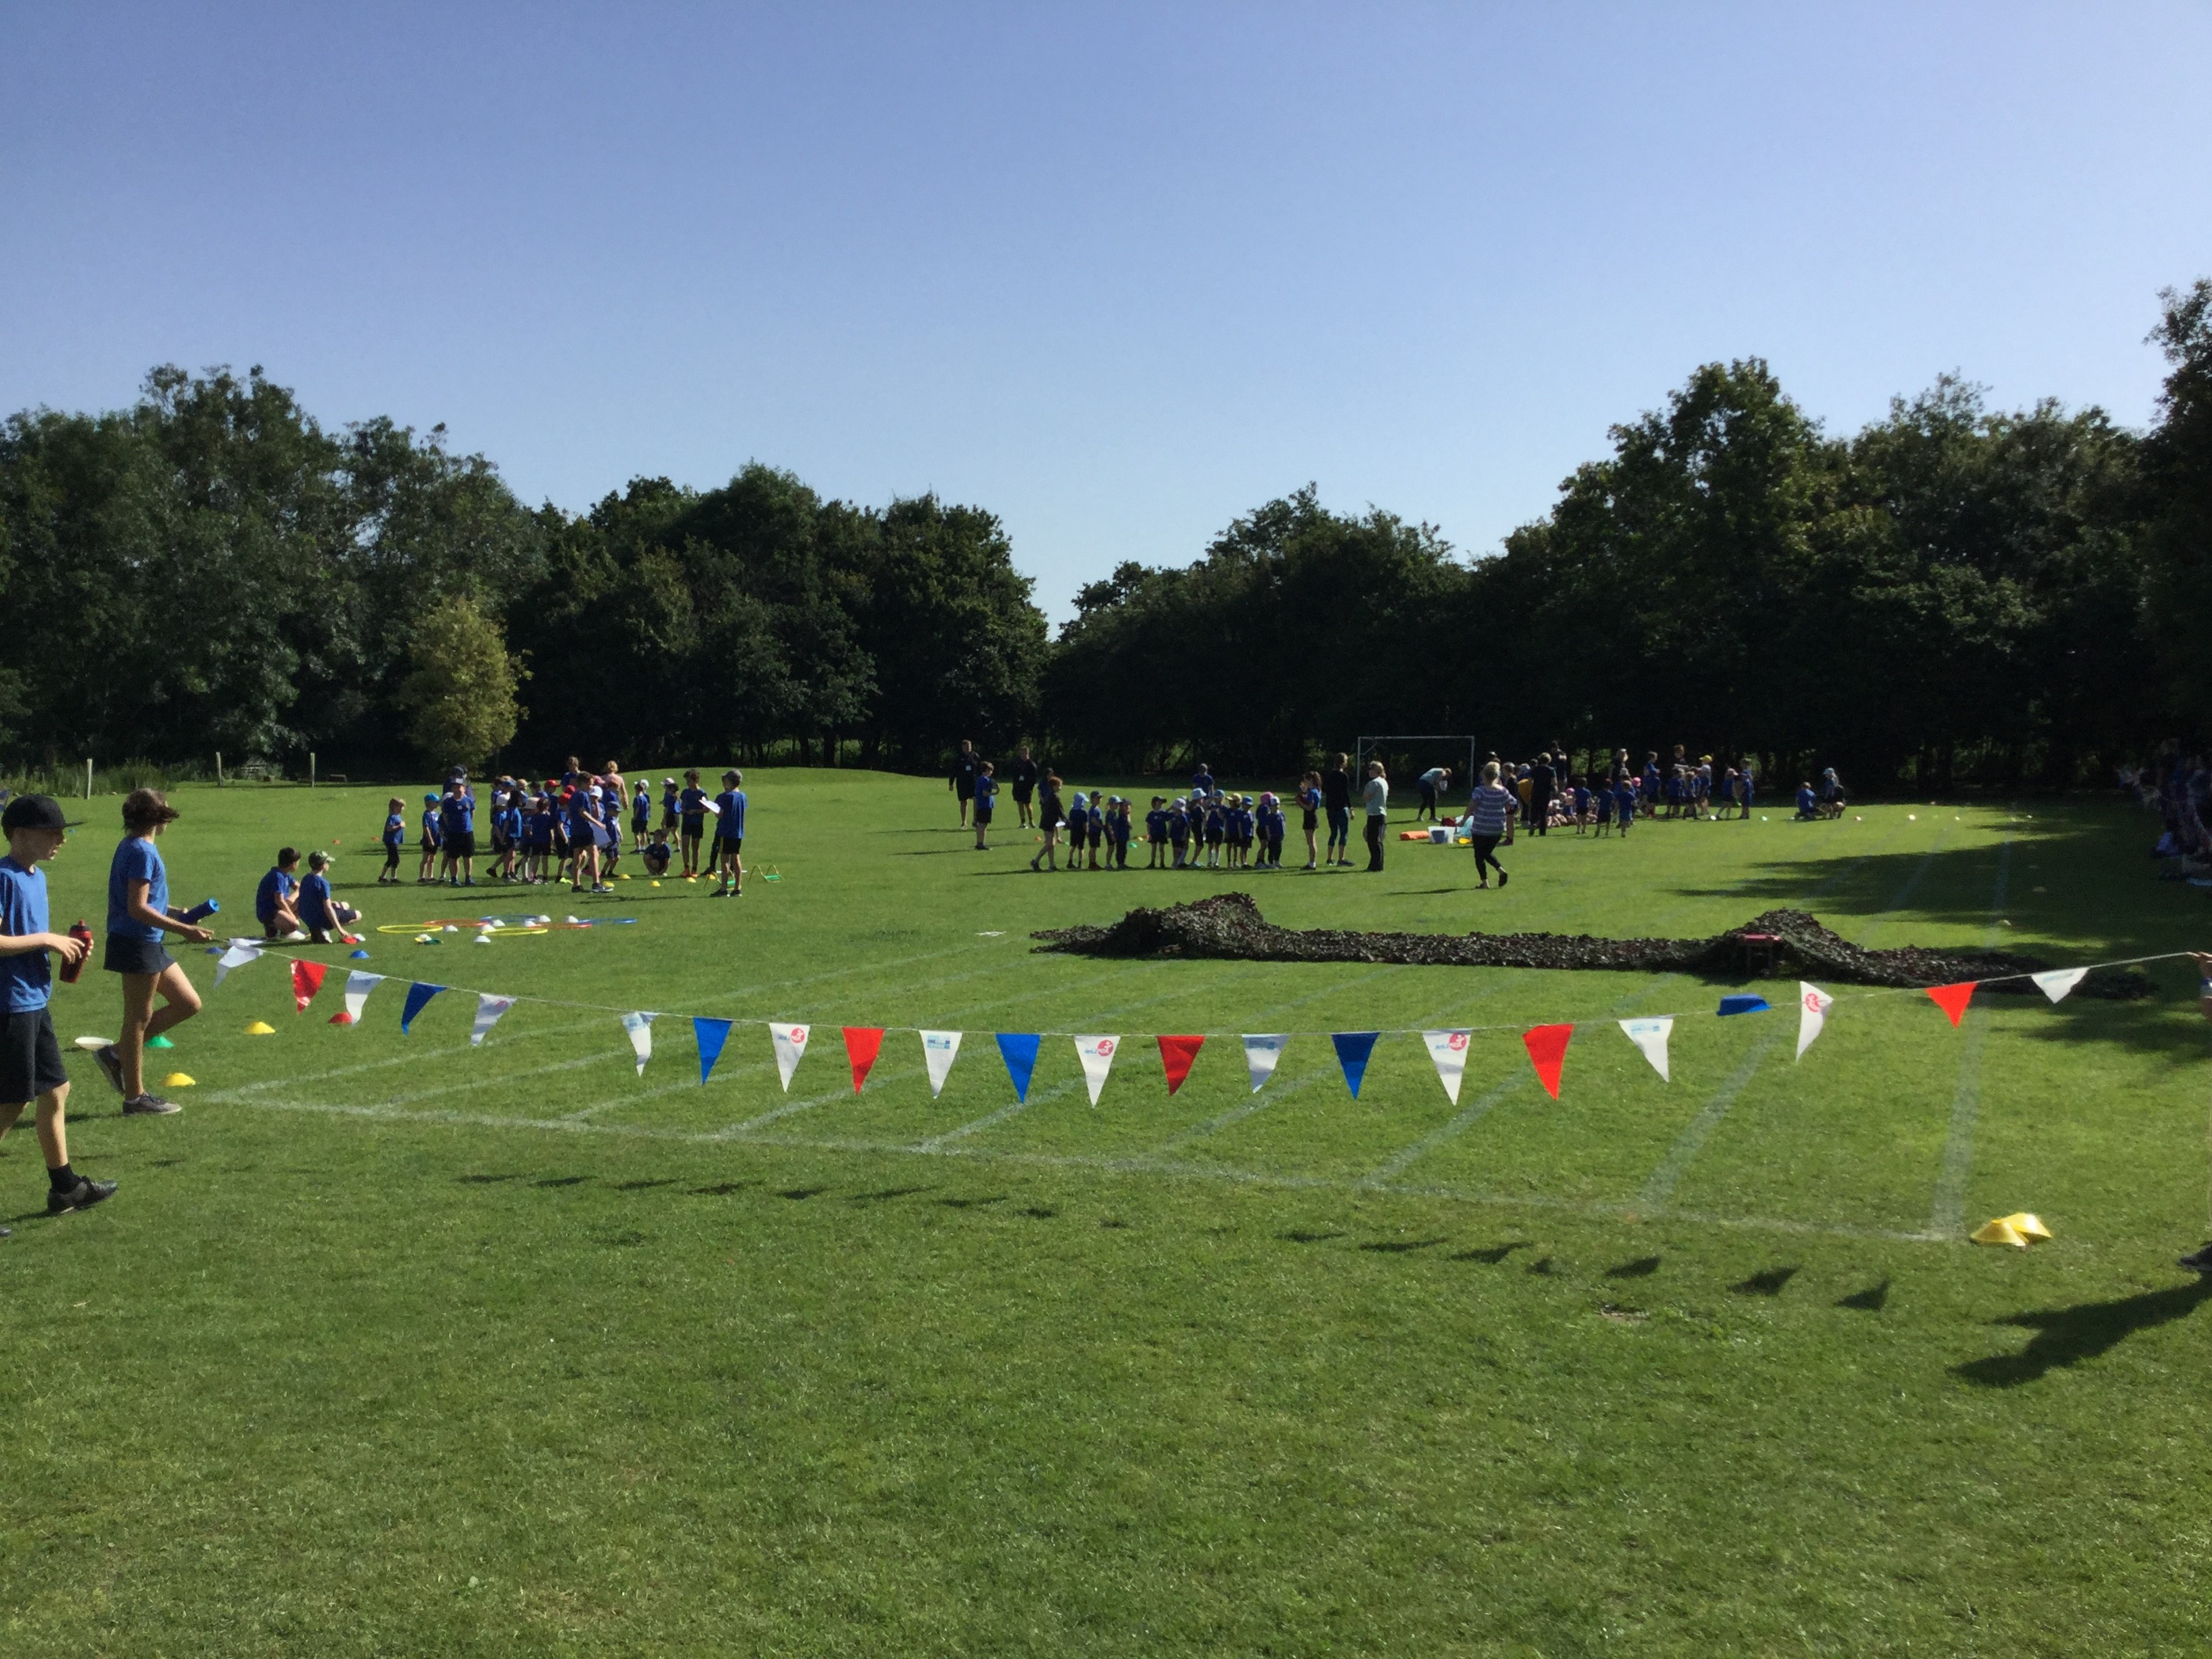 Fantastic Sunny Sports Day at Bathampton Primary School